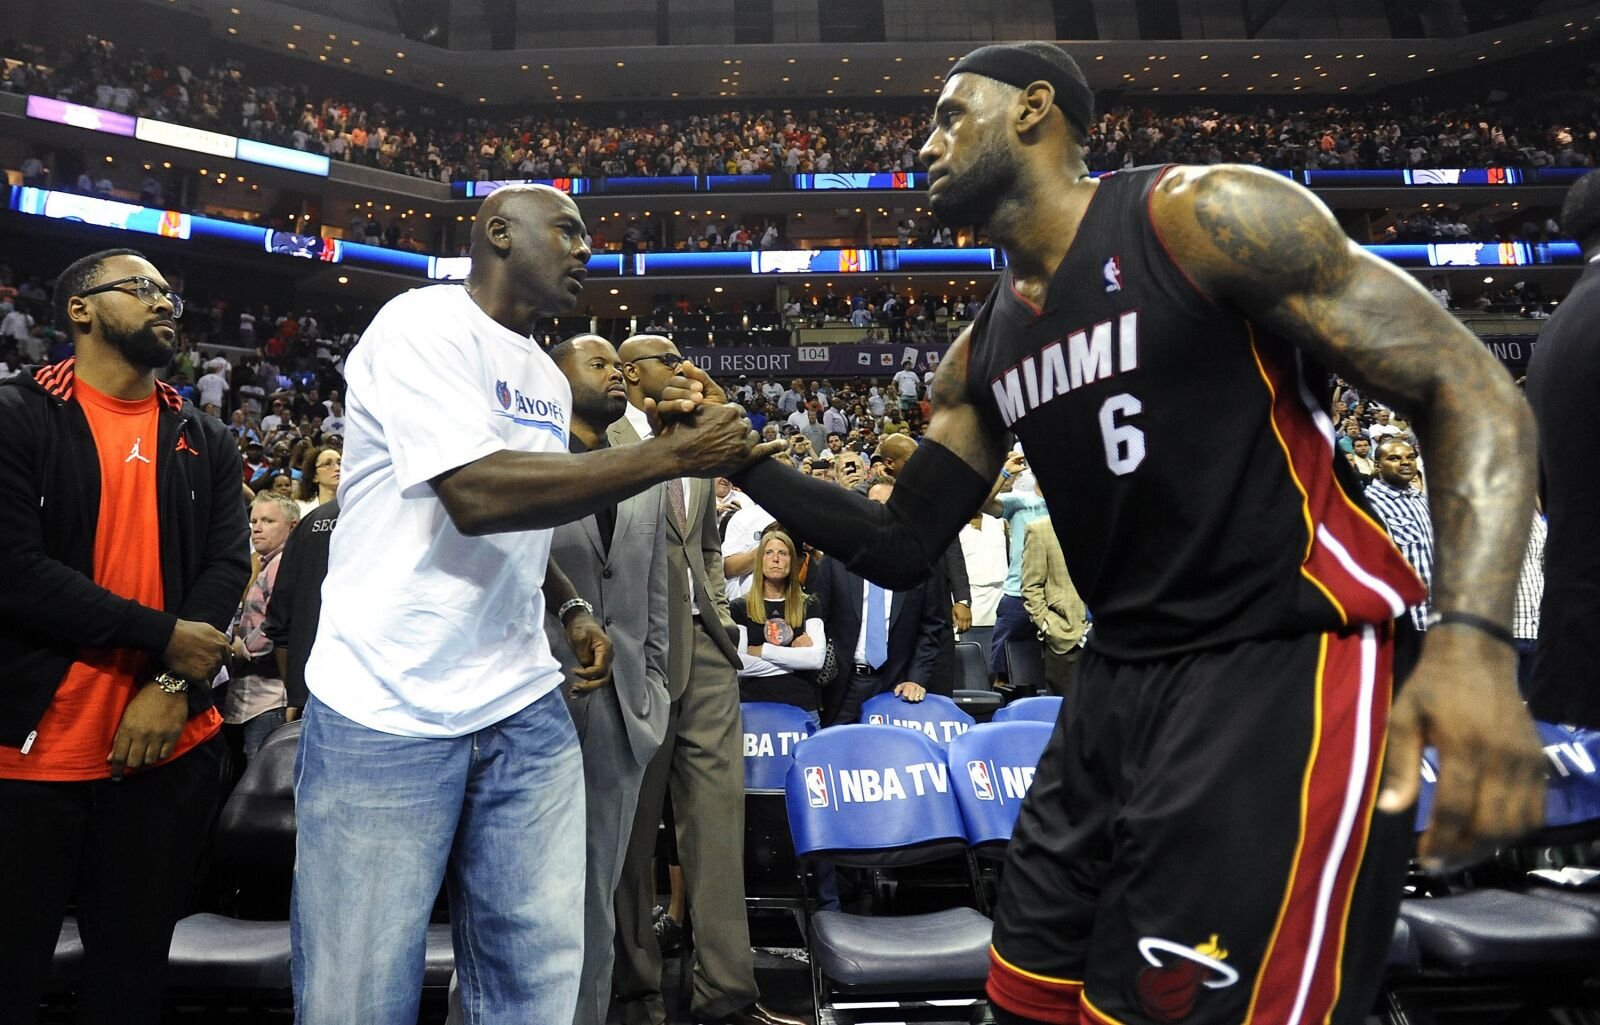 6dbbca22445903 Bill Laimbeer is a fool for taking LeBron James over Michael Jordan